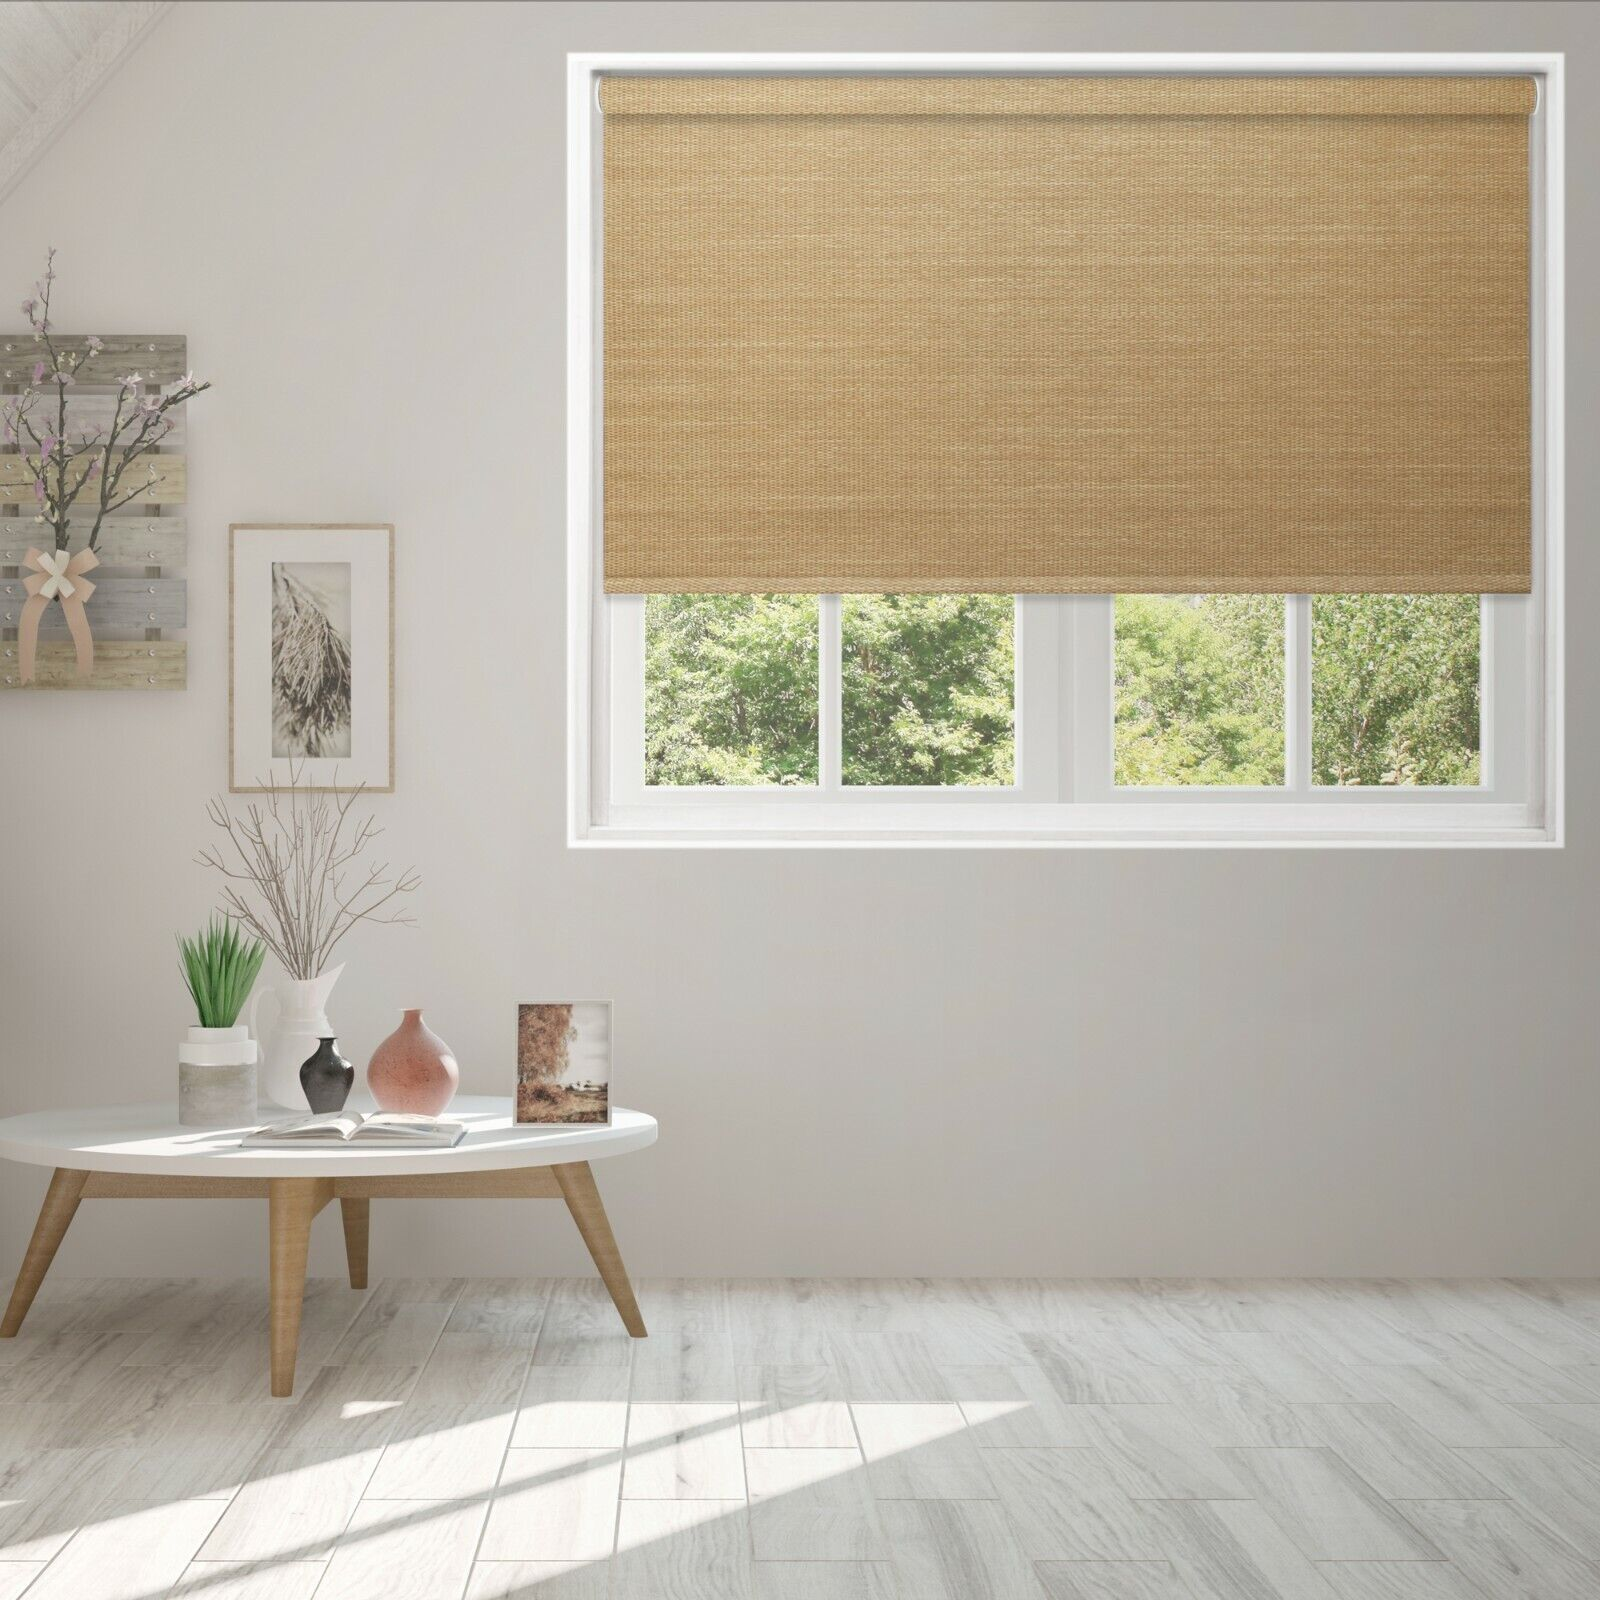 Bamboo Natural Woven Window Blind Roller Shade with Cassette